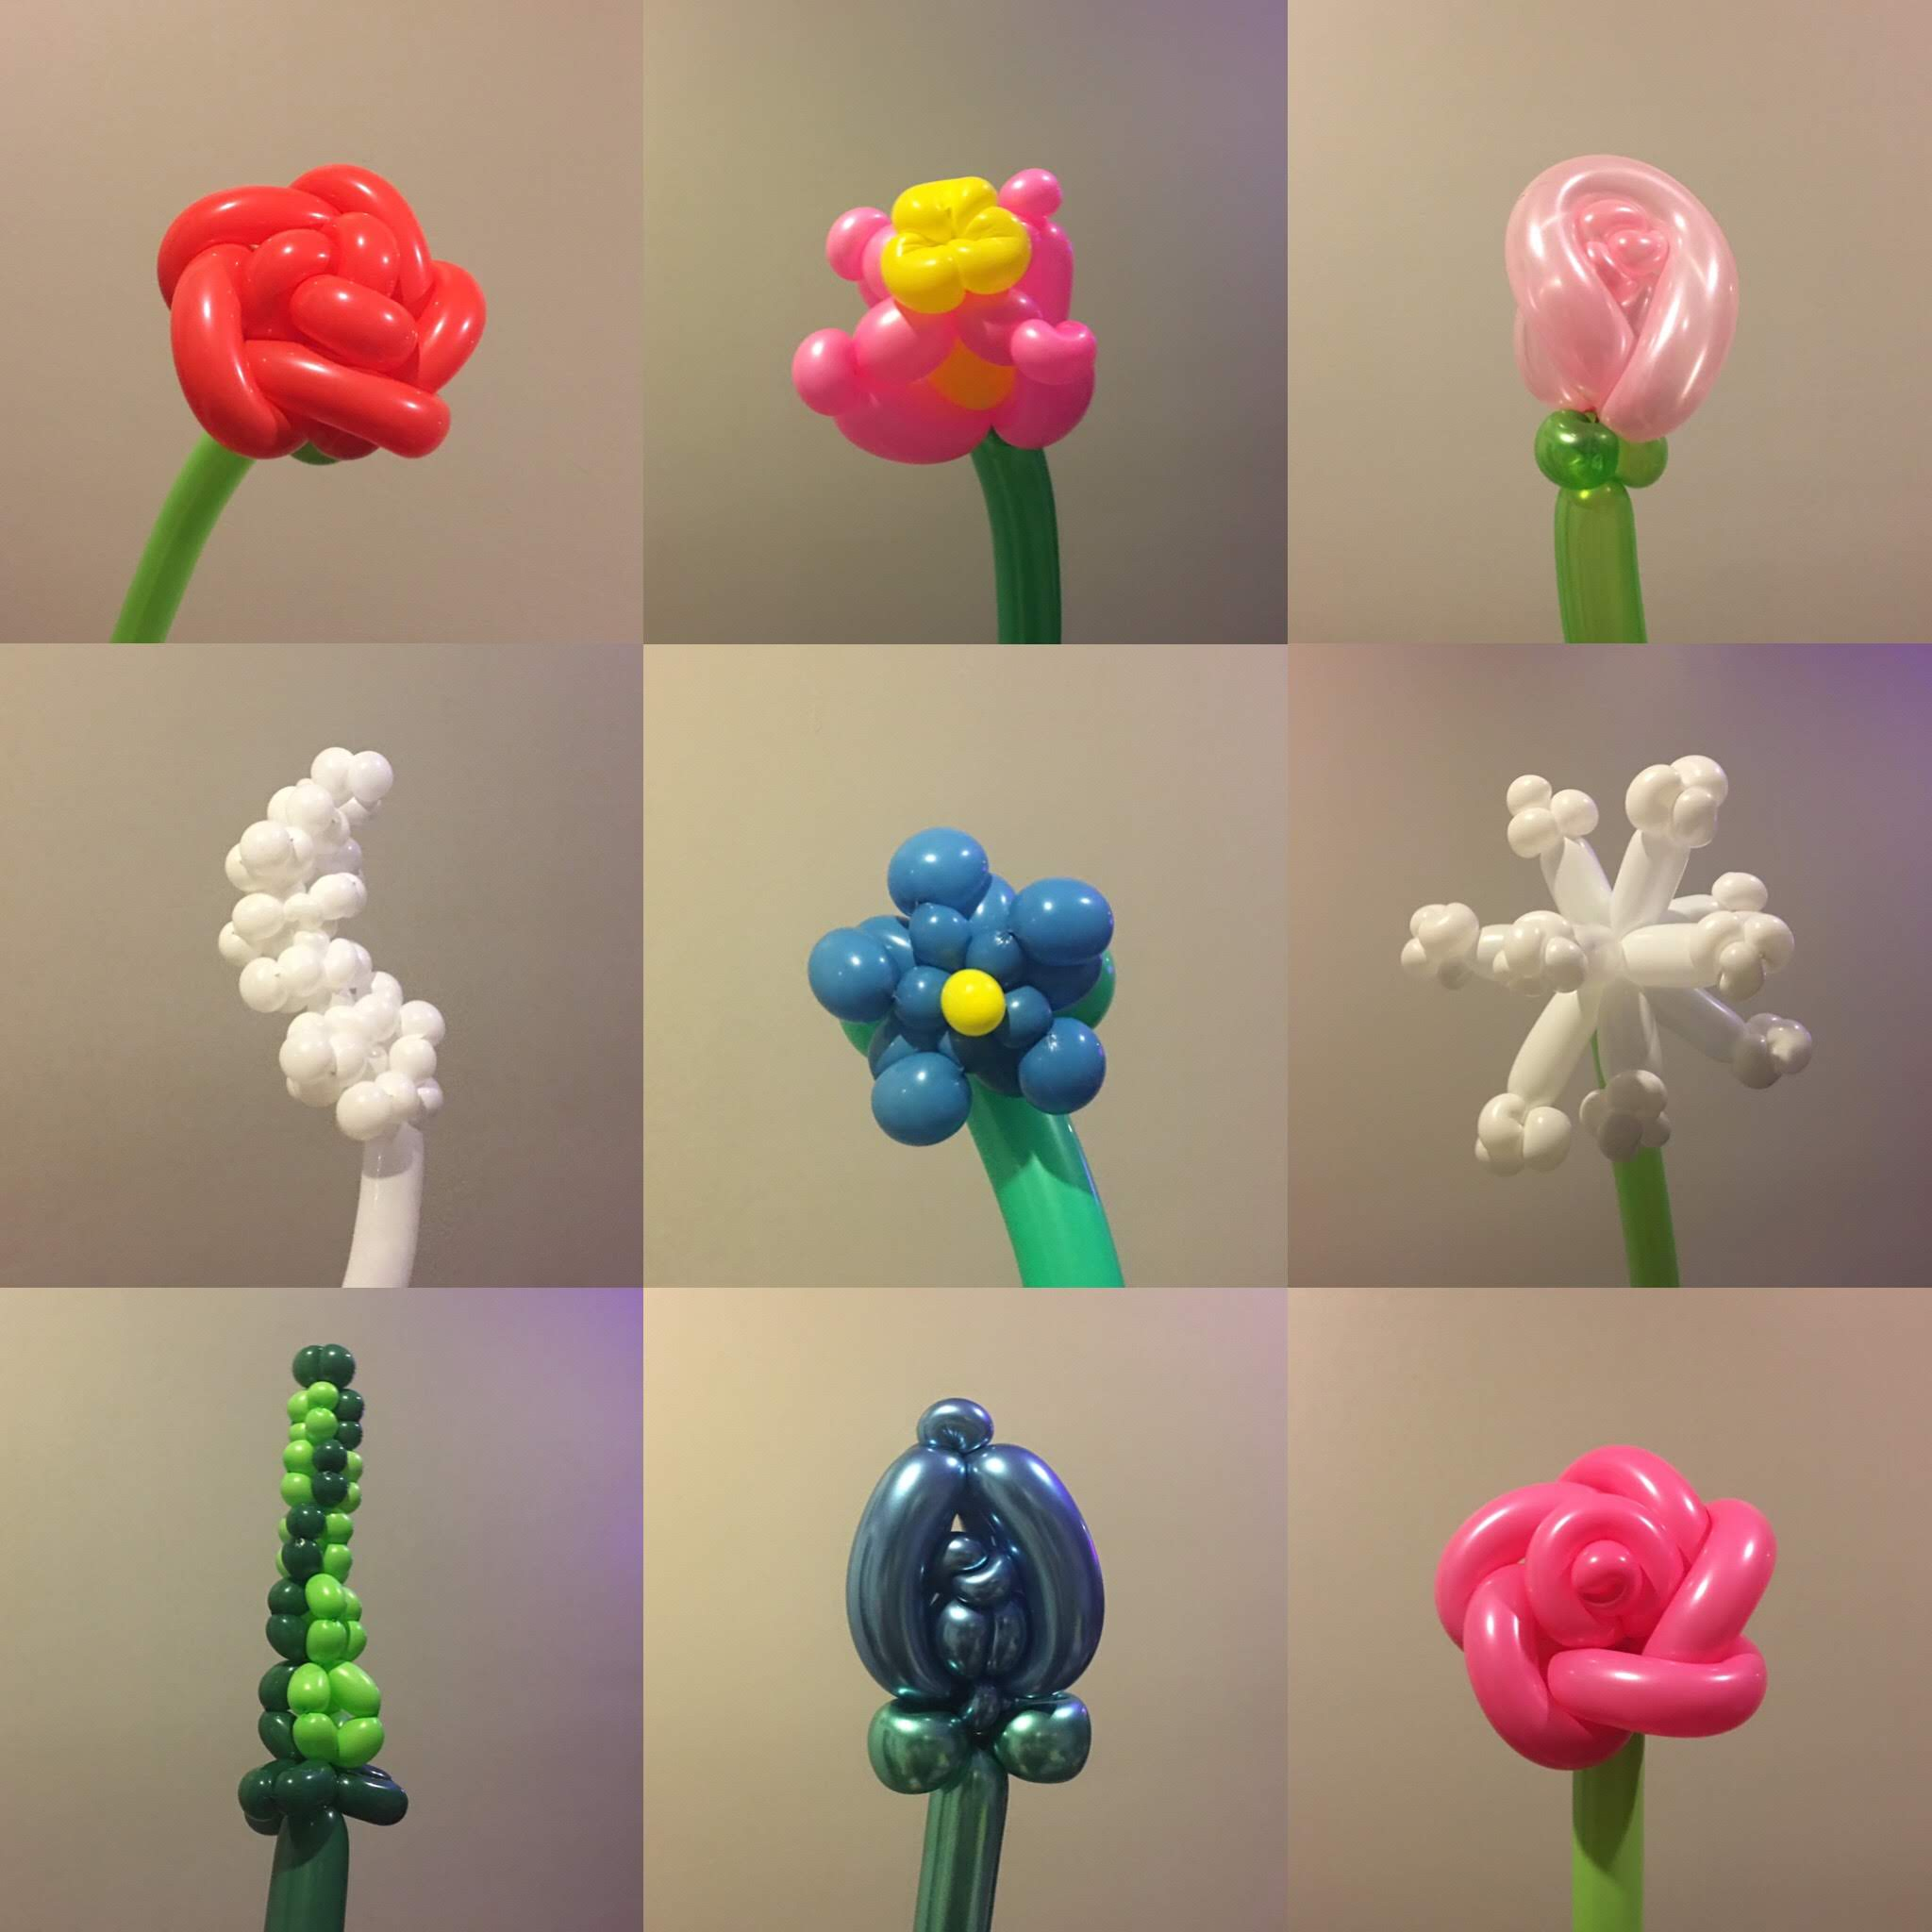 Silver-Tier Balloon Flower examples